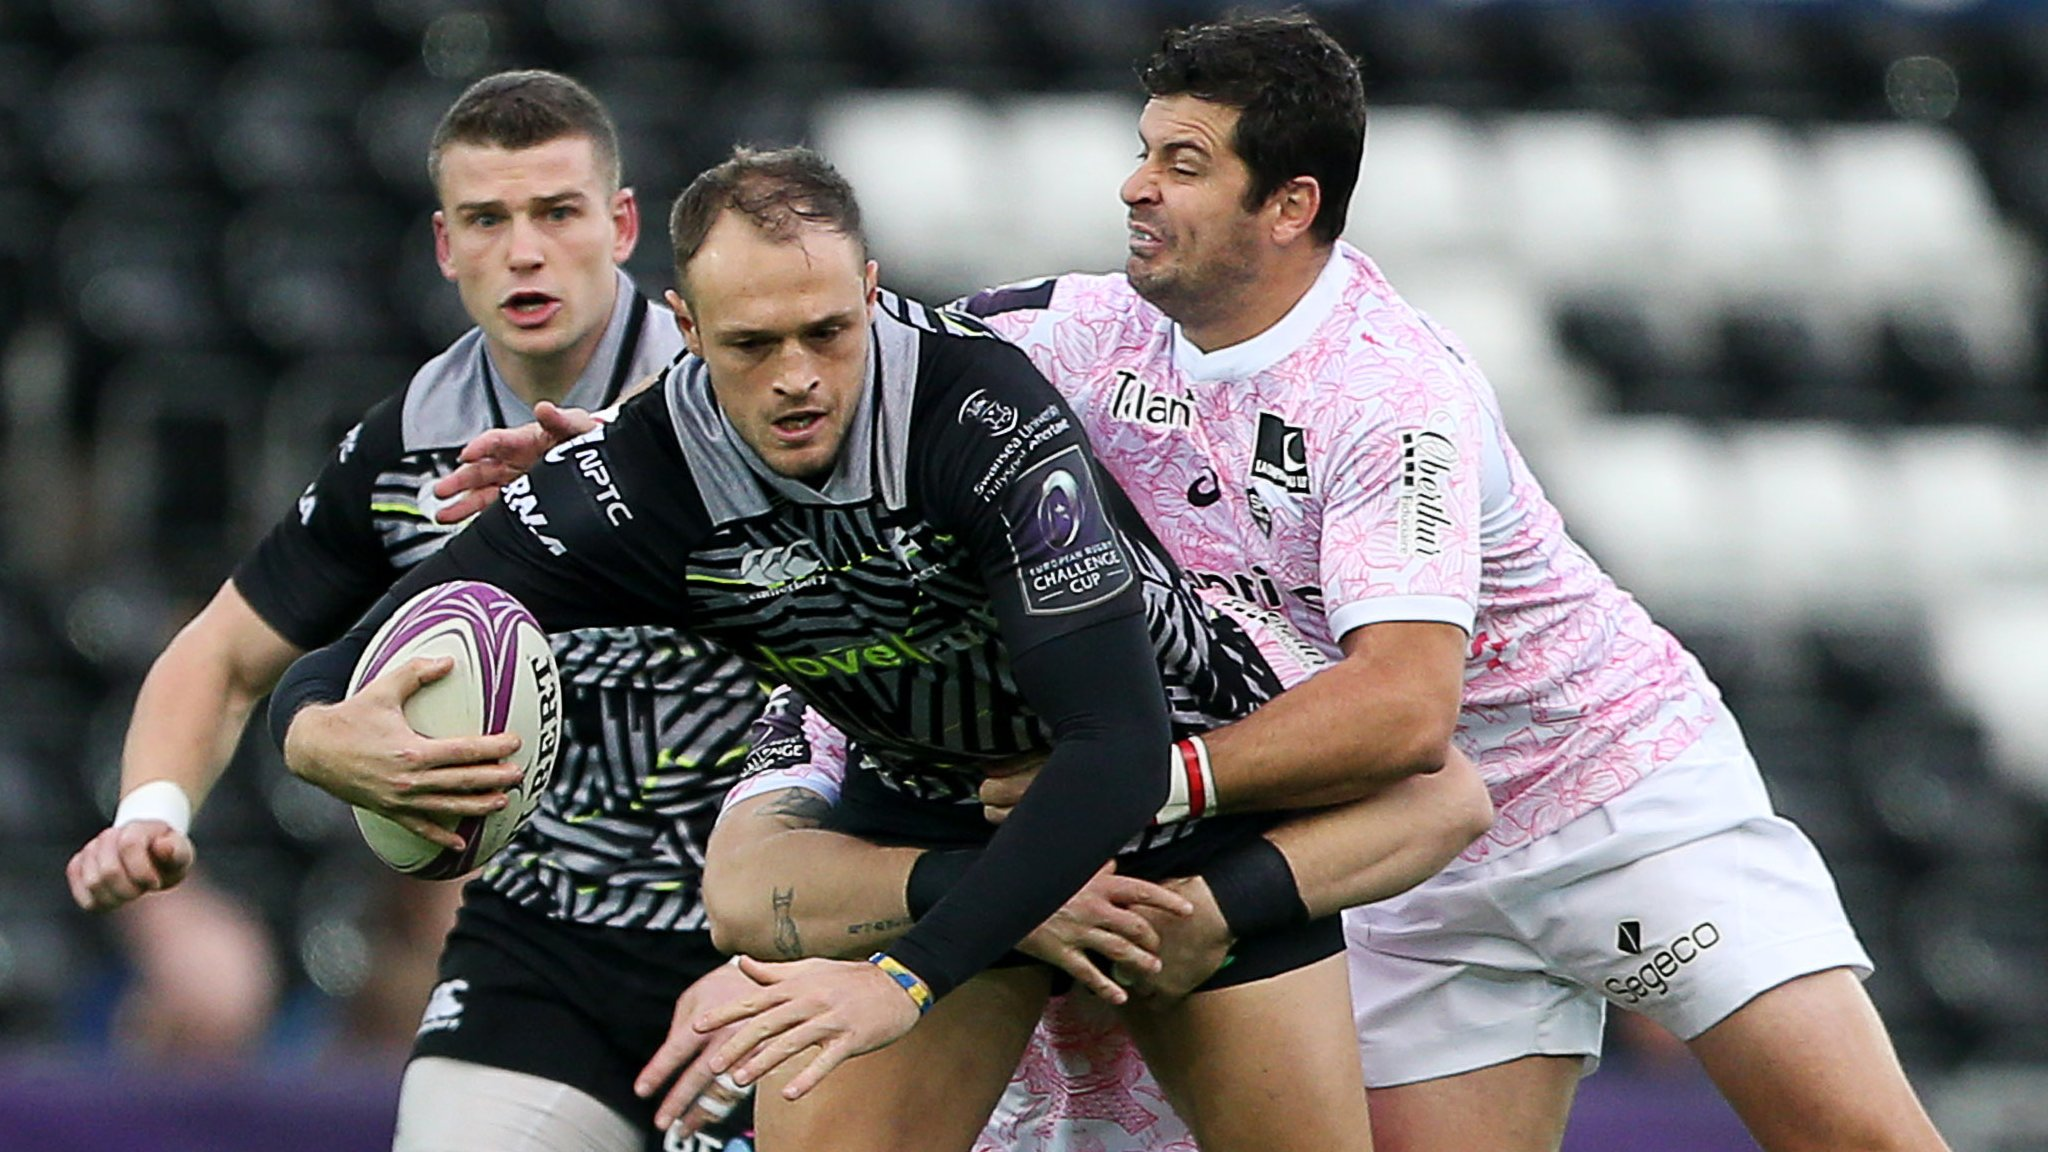 Ospreys top Challenge Cup pool after win over Stade